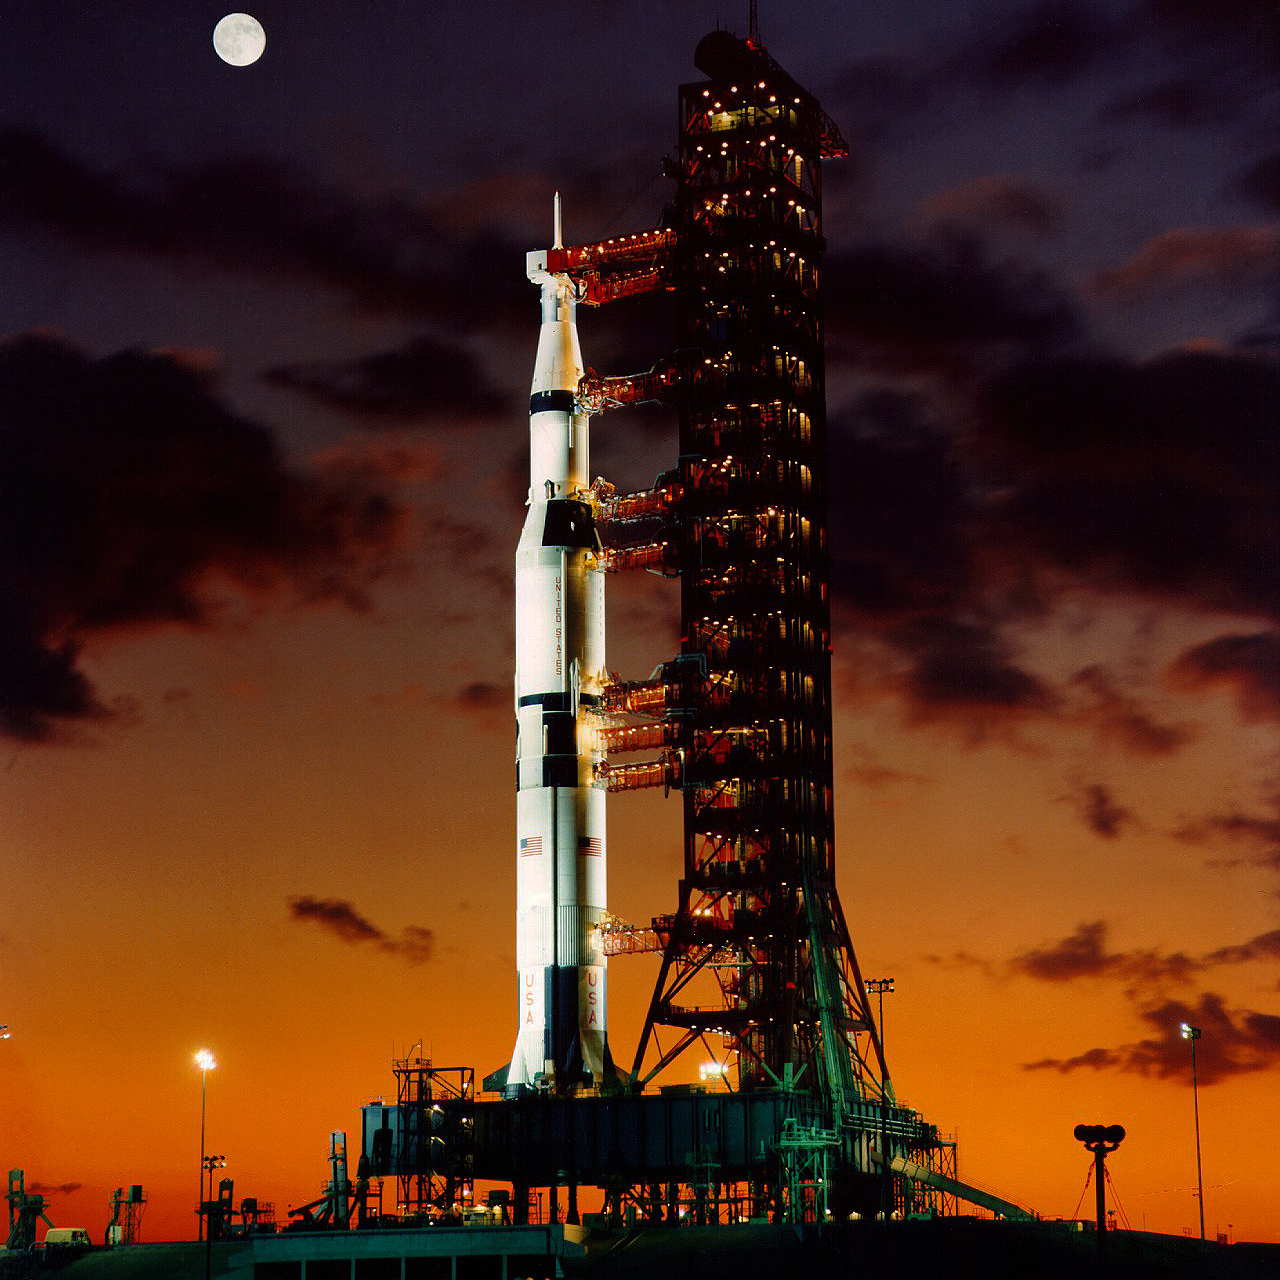 Jean-Baptiste Faure: The first Saturn V rocket on launch ...